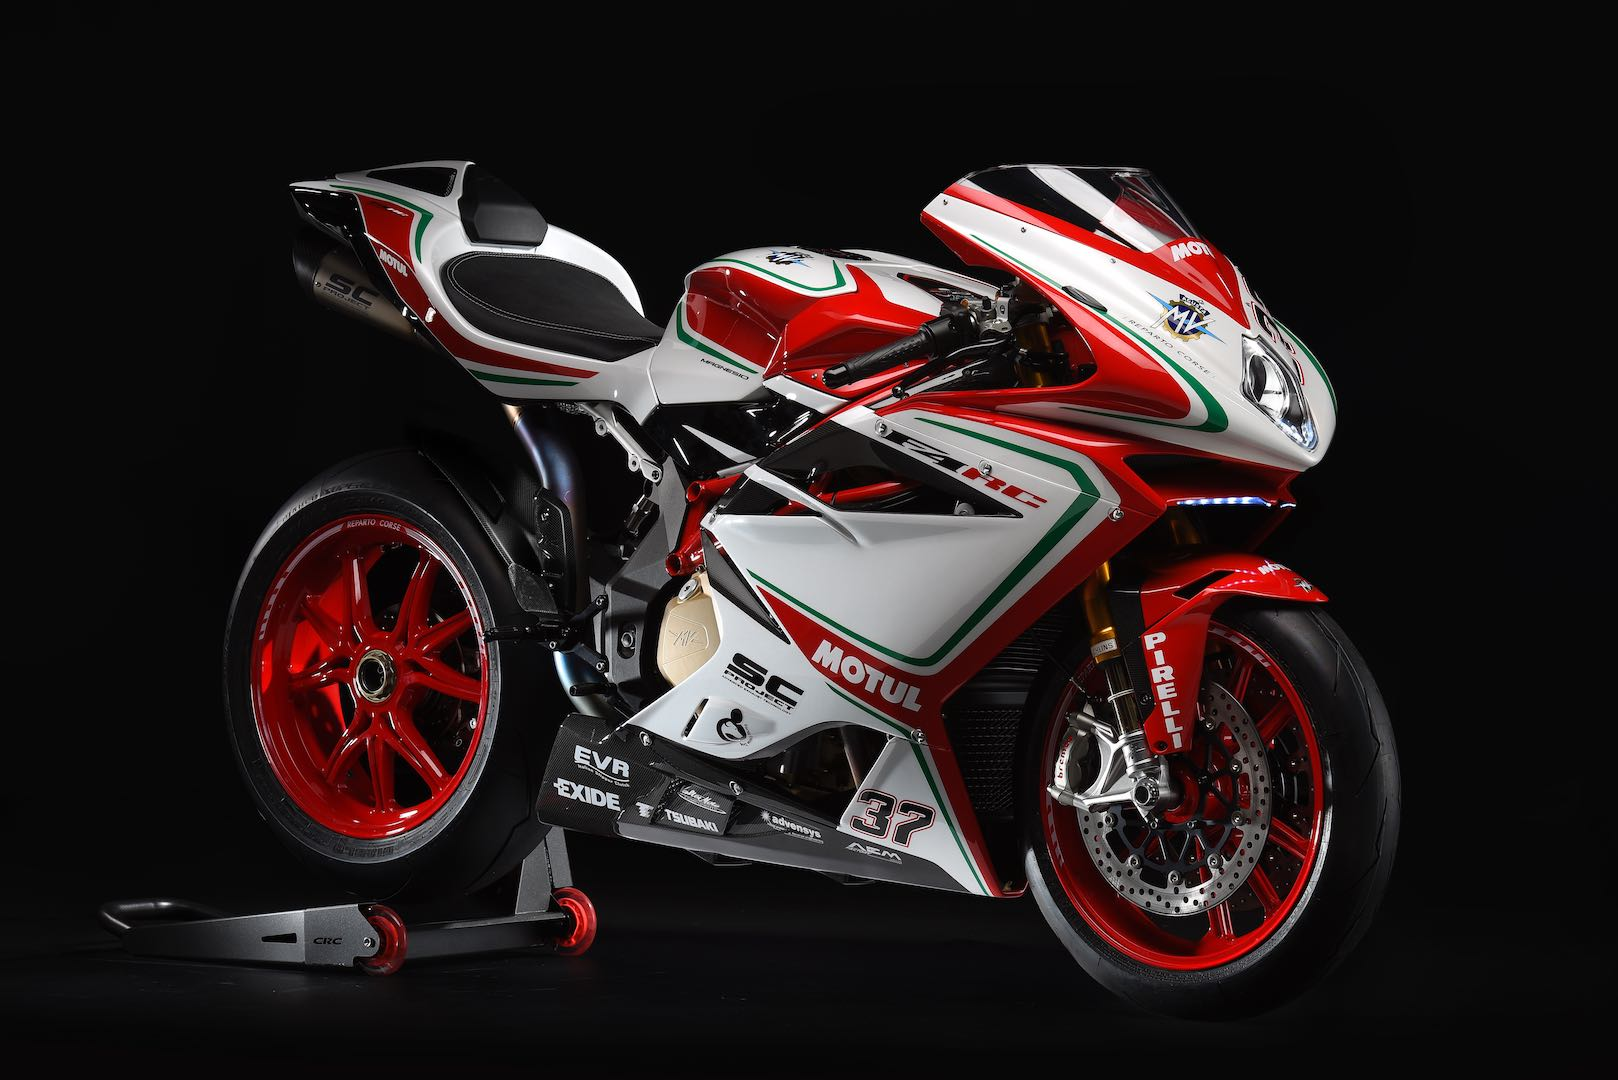 A new MV Agusta F4 superbike? Only in 2021!